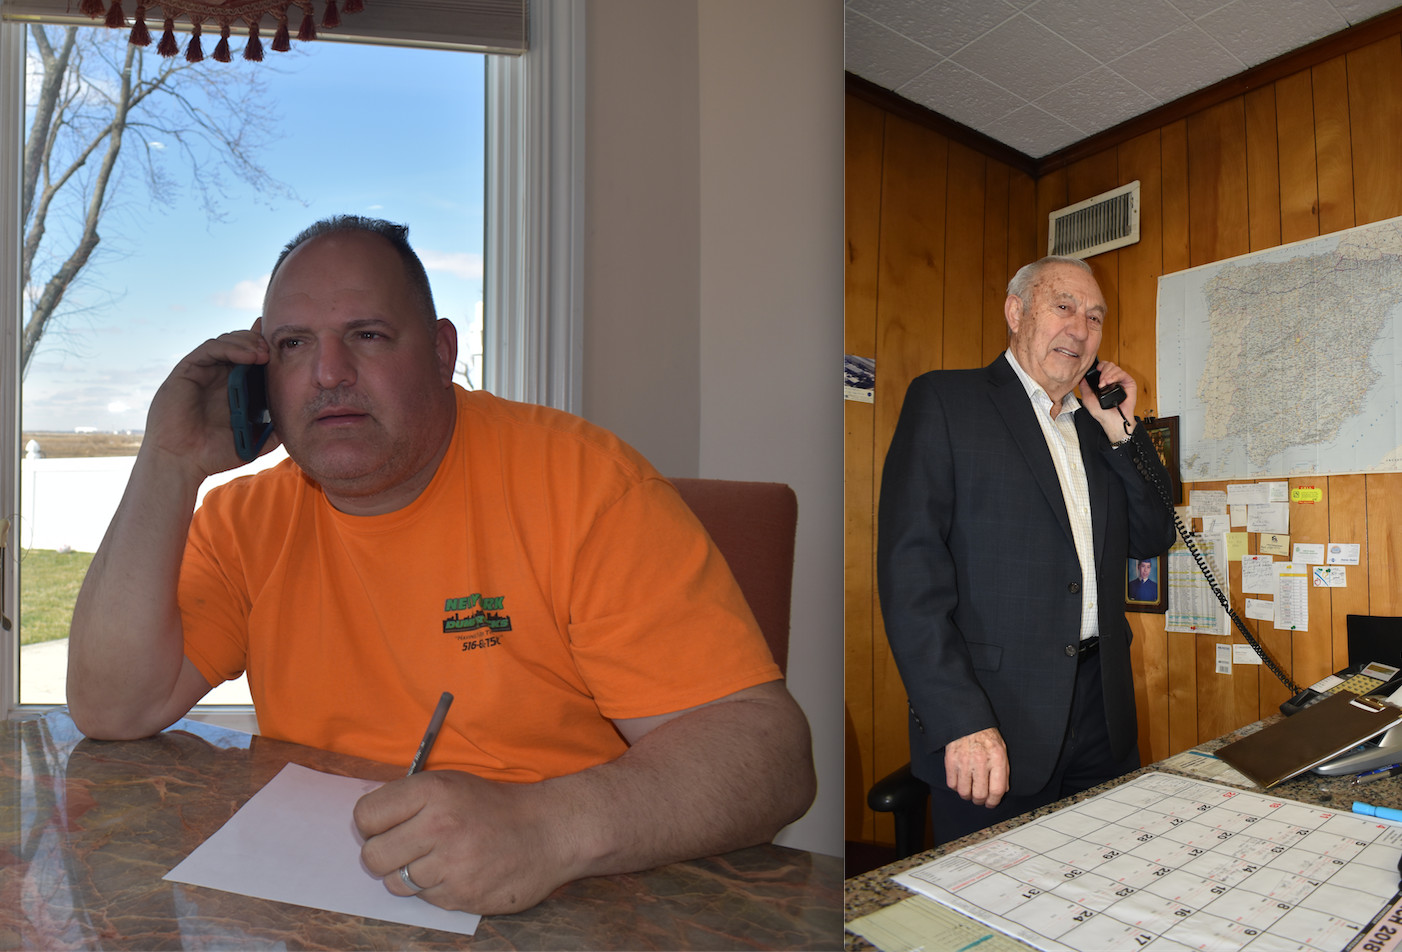 David Hance, left, and Mario Giuseppe Romanelli, will be honored at the Inwod Civic Association dinner on March 24.